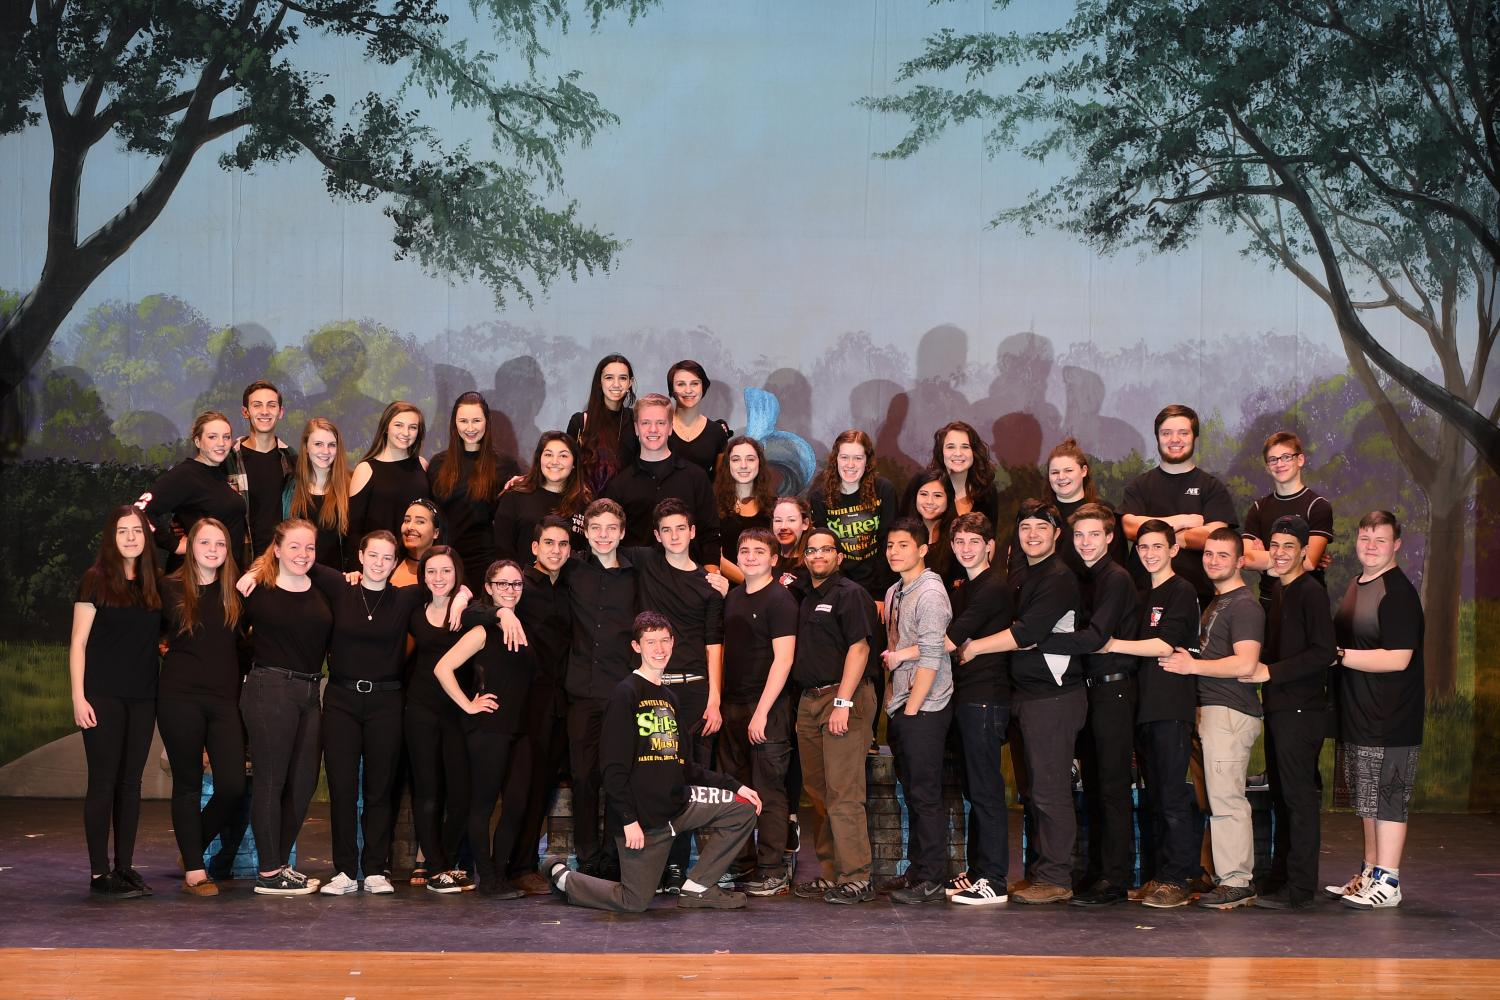 The+hardworking+stage+crew+from+the+Spring+musical+%E2%80%9CMary+Poppins%E2%80%9D+is+ready+for+their+turn+in+the+spotlight.